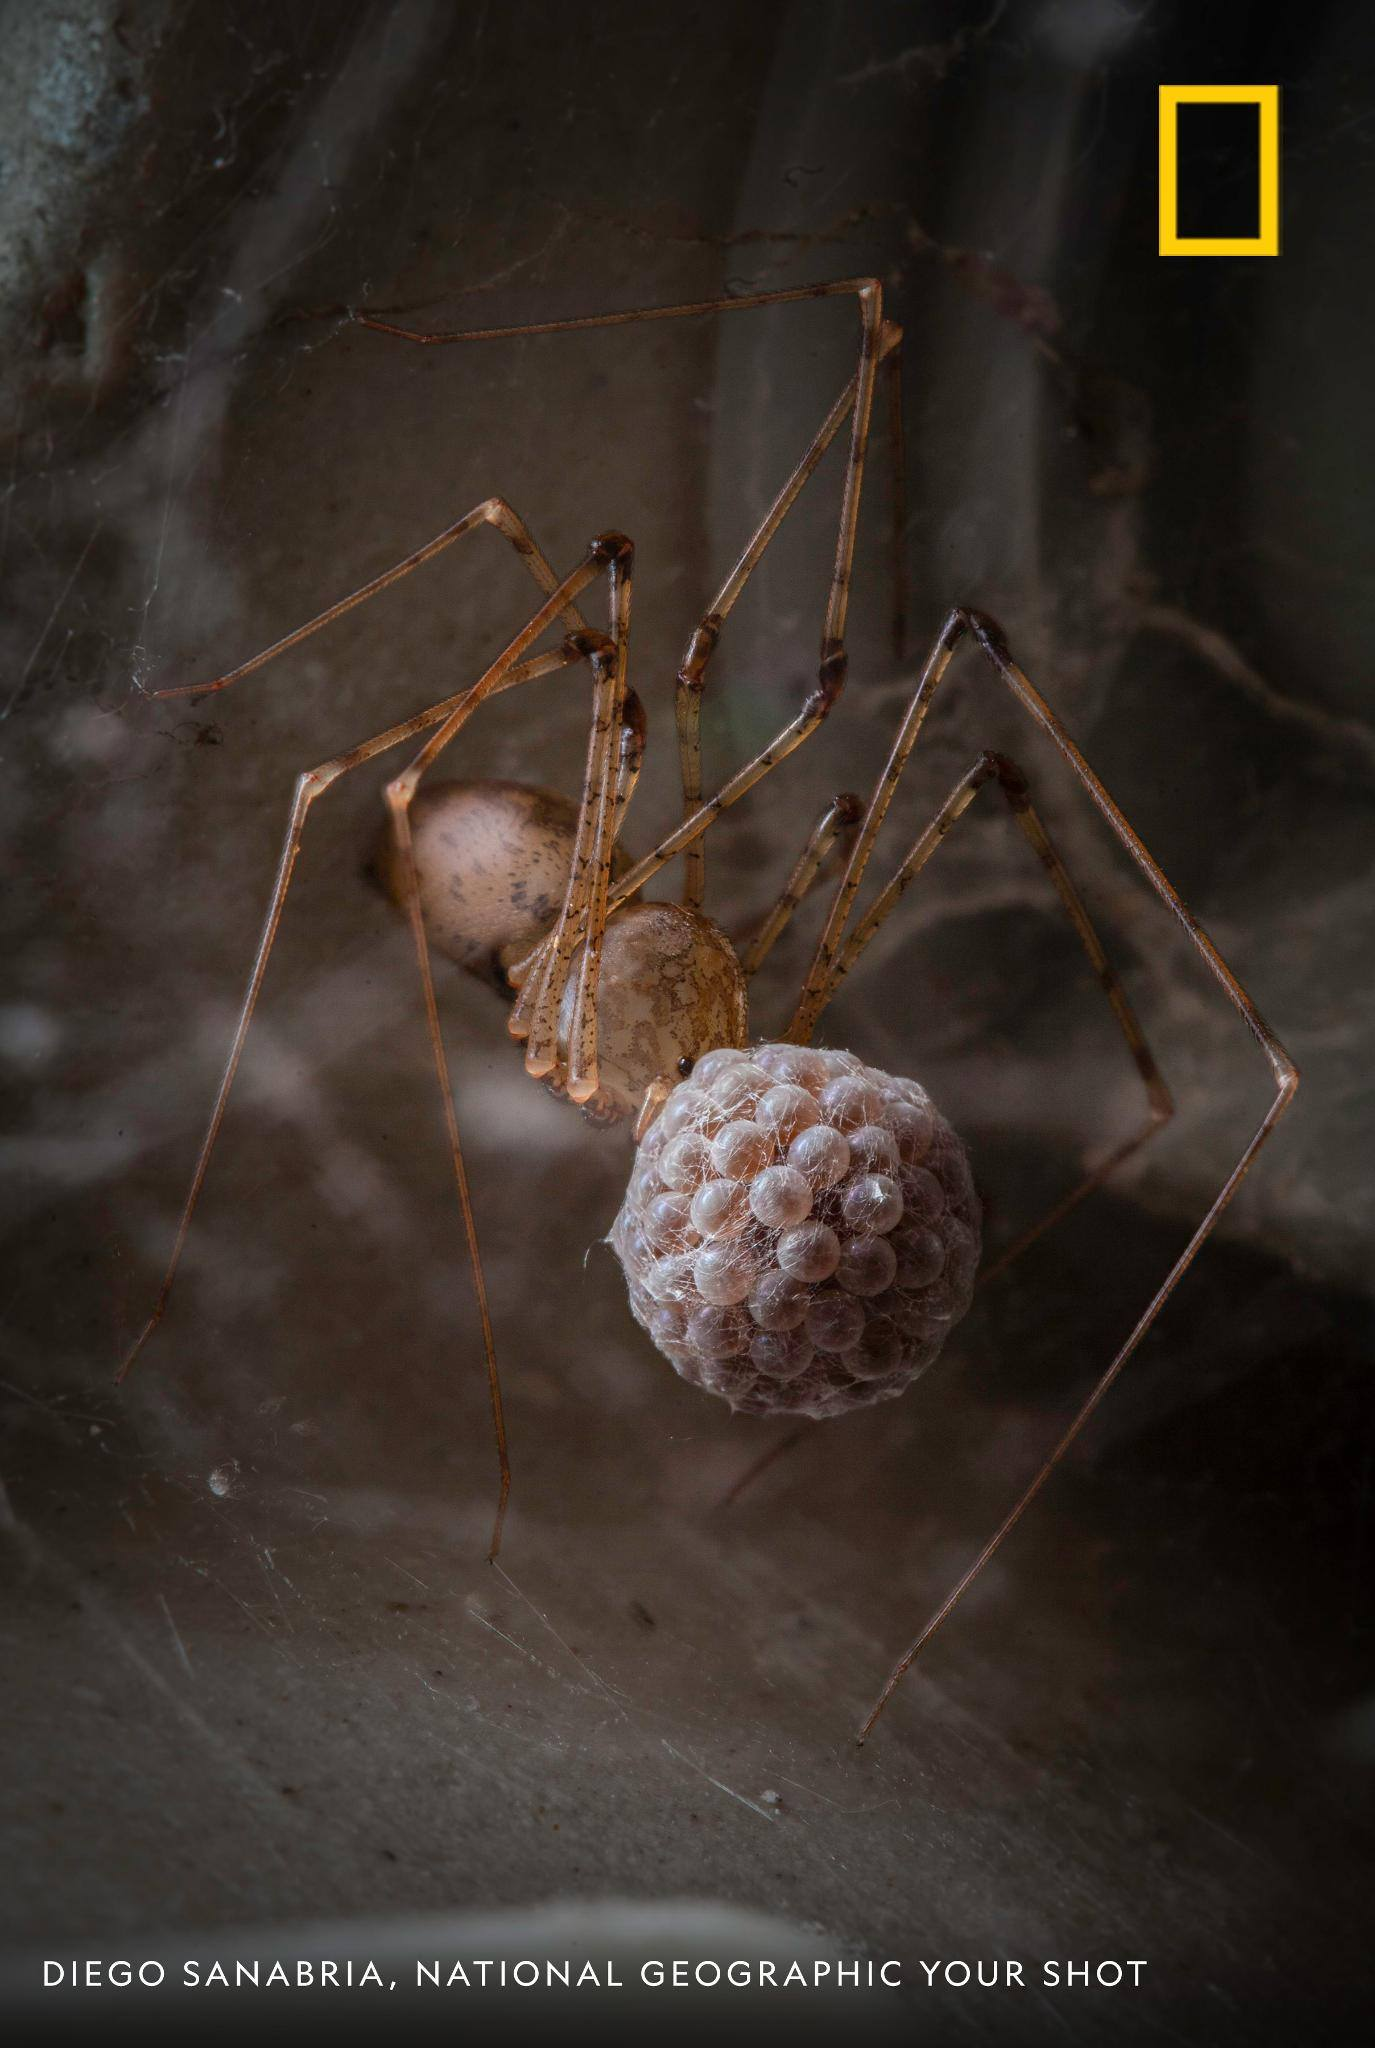 Under a sink in an abandoned bathroom in rural Colombia, photographer Diego Sanabria caught sight of this spider with her egg sac. She'll hold it in her mouth for several days until they hatch. https://on.natgeo.com/2OrBpRS